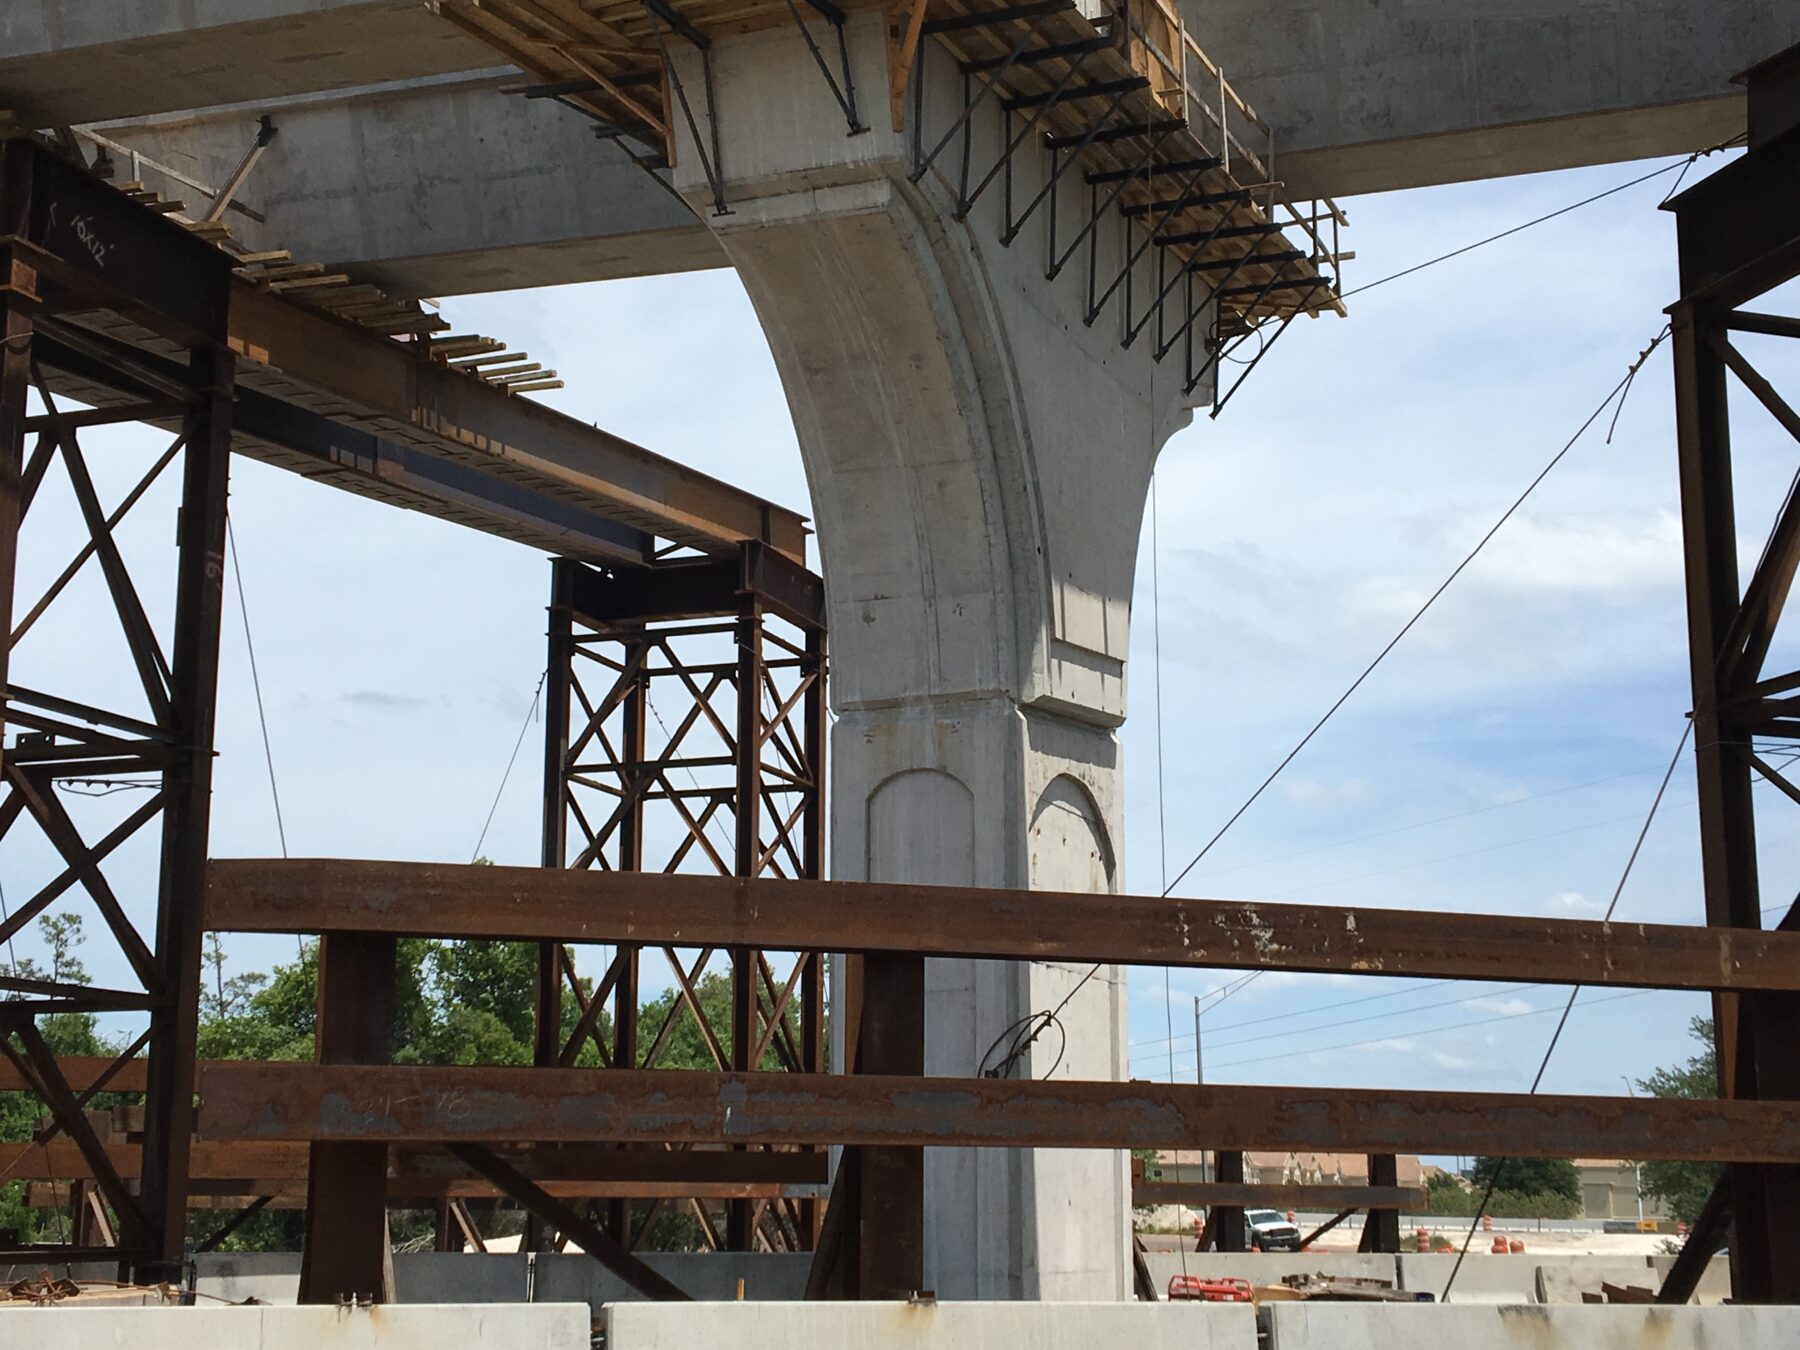 Construction of State Road 417 flyover ramps support pillar